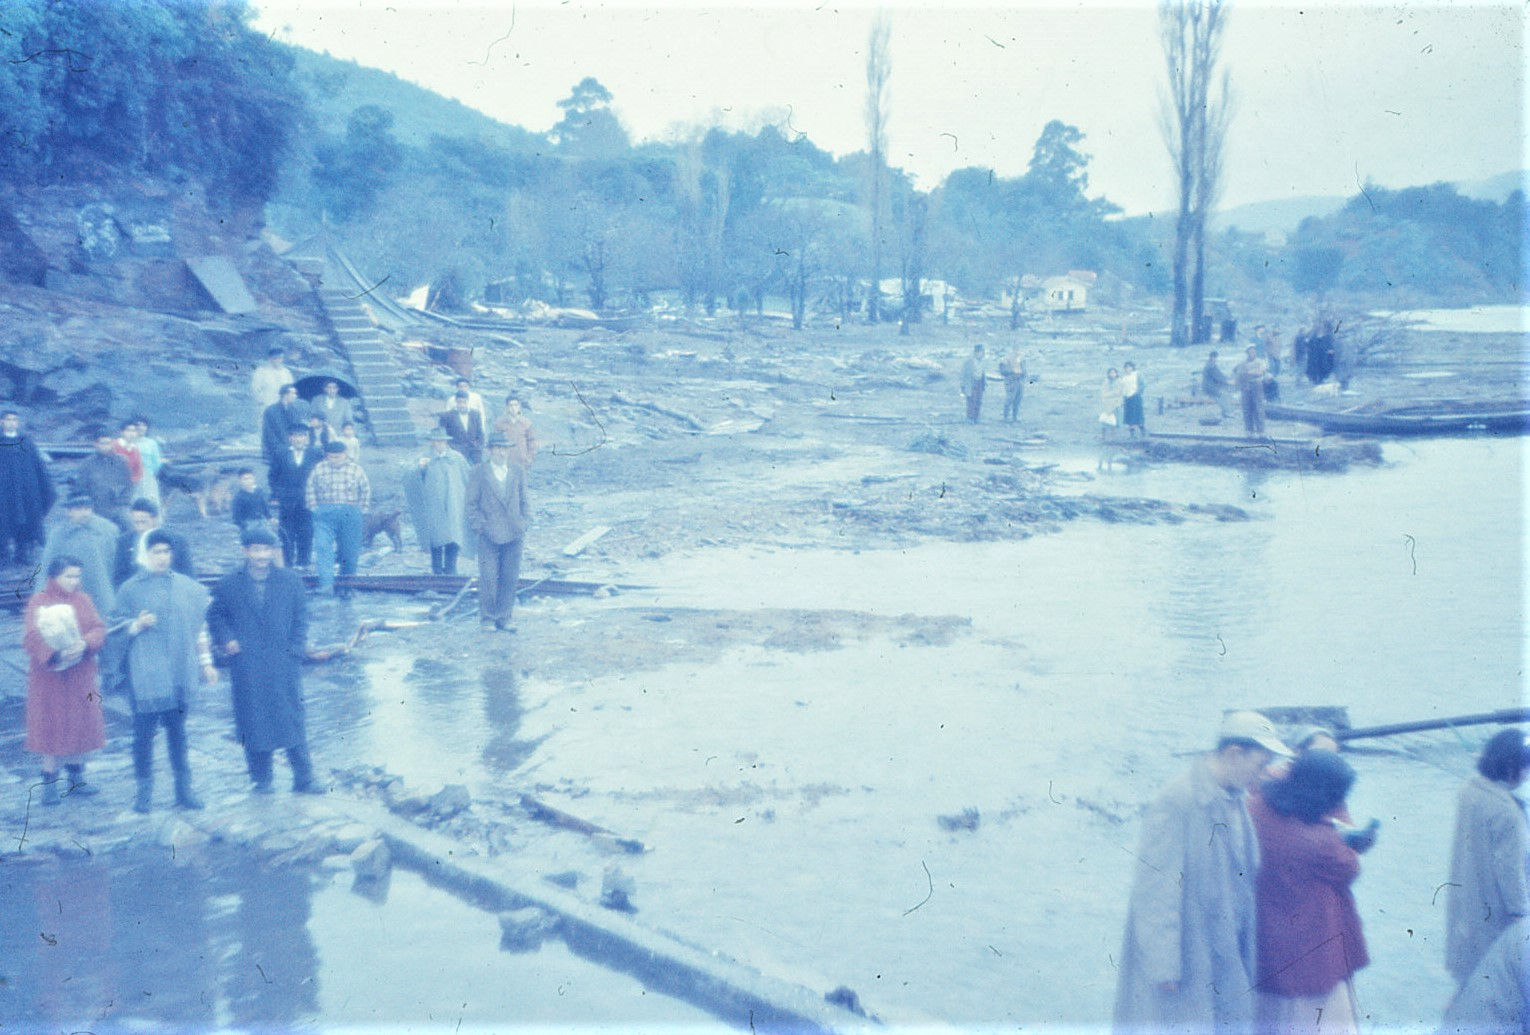 Enterreno - Fotos históricas de chile - fotos antiguas de Chile - Terremoto Valdivia, 1960